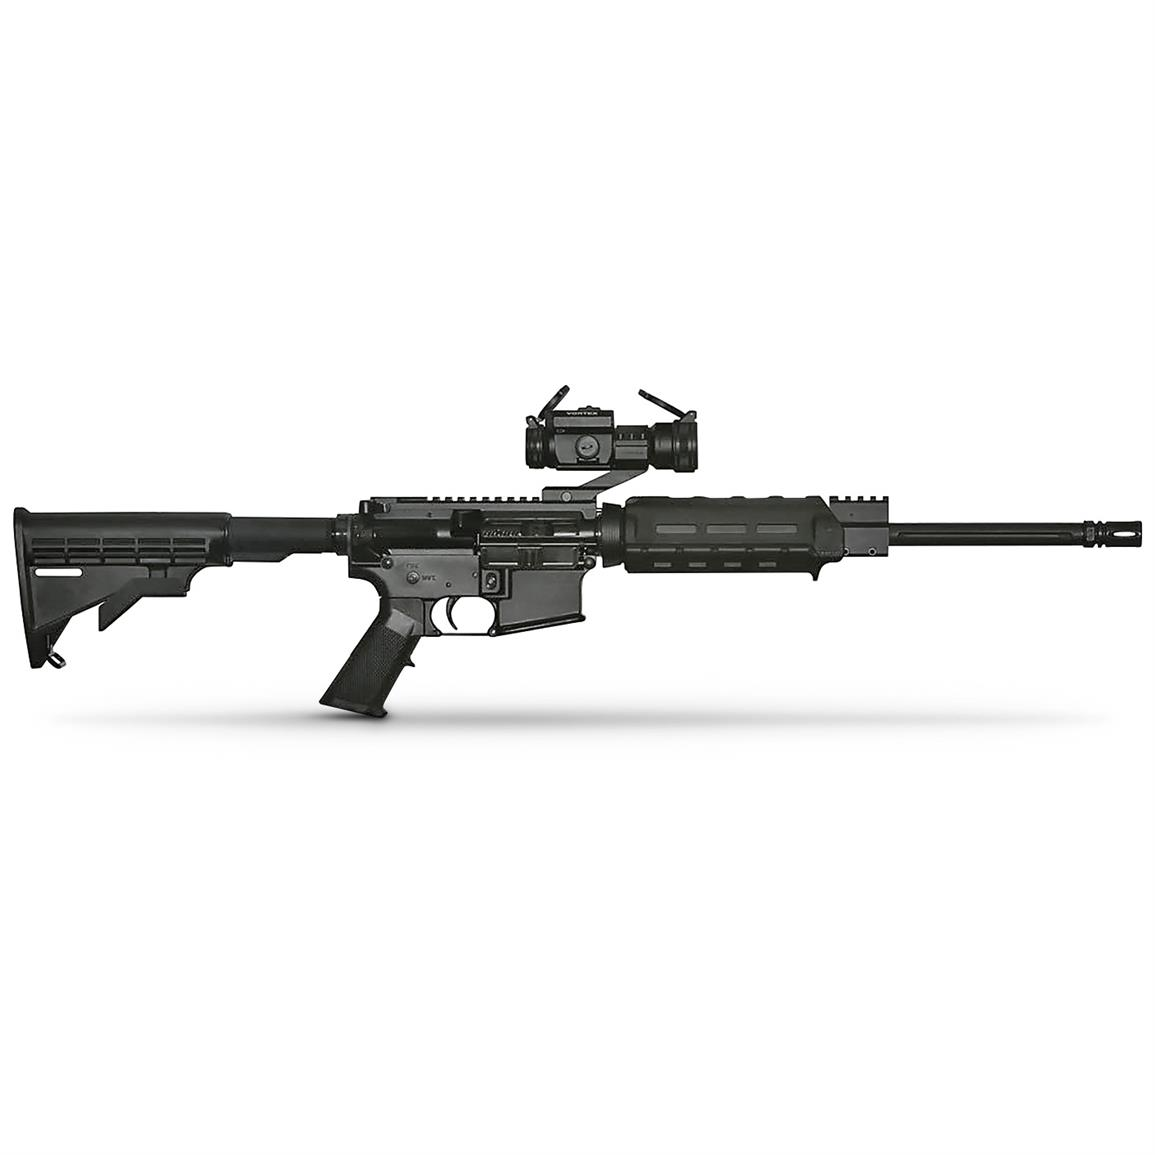 APF Econo Carbine, Semi-Automatic, .300 AAC Blackout, Vortex Strikefire II Red Dot Sight, 30 Rounds